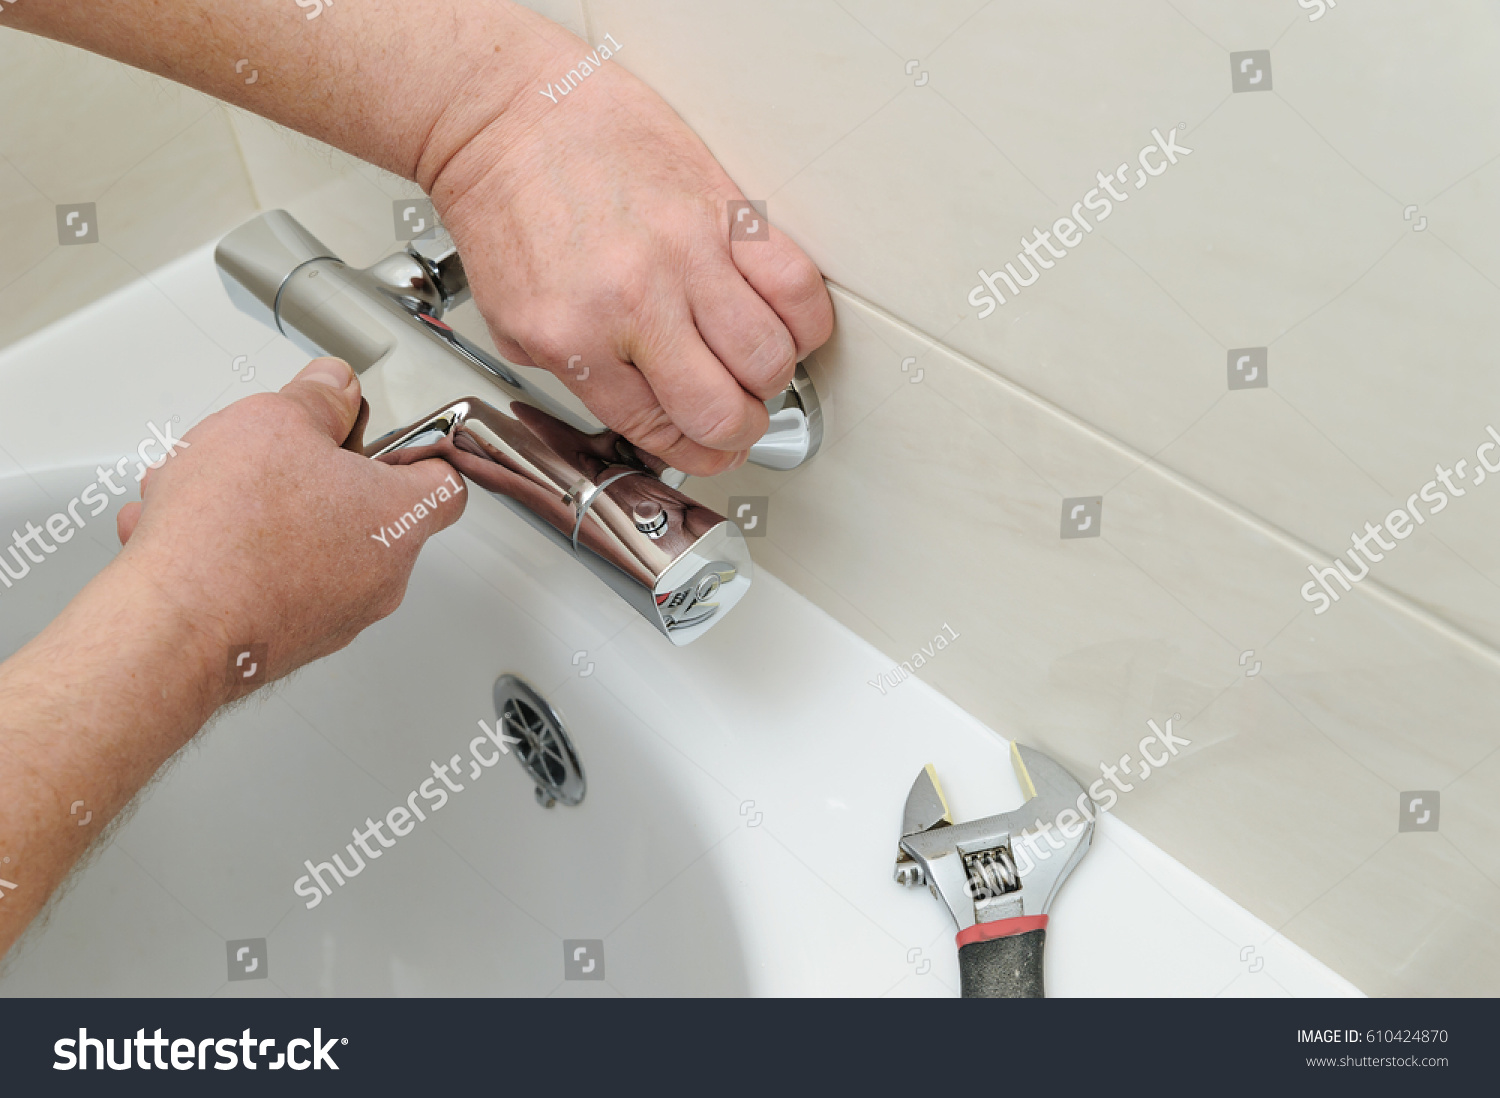 Install the tap with female hands